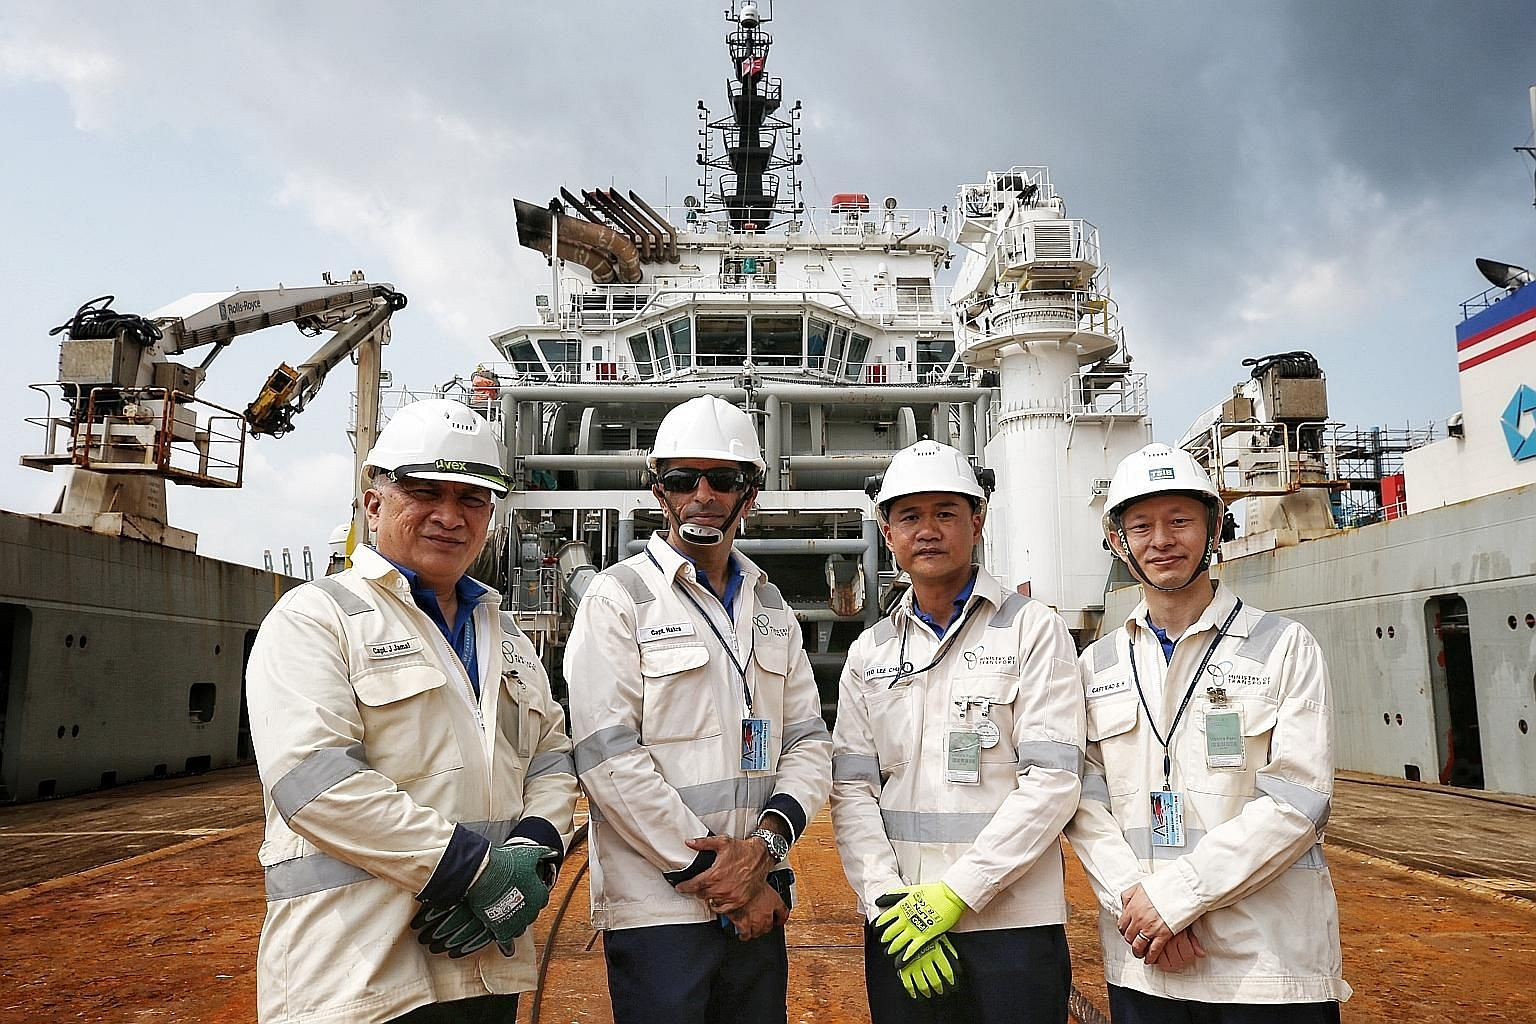 Marine safety investigators (from far left) Jamaludin Jaffar, Kunal Nakra, Yeo Lee Chuan and Xiao Shouhai look into marine incidents with serious casualties that involve Singapore-registered ships and those that involve foreign-registered vessels in Singa